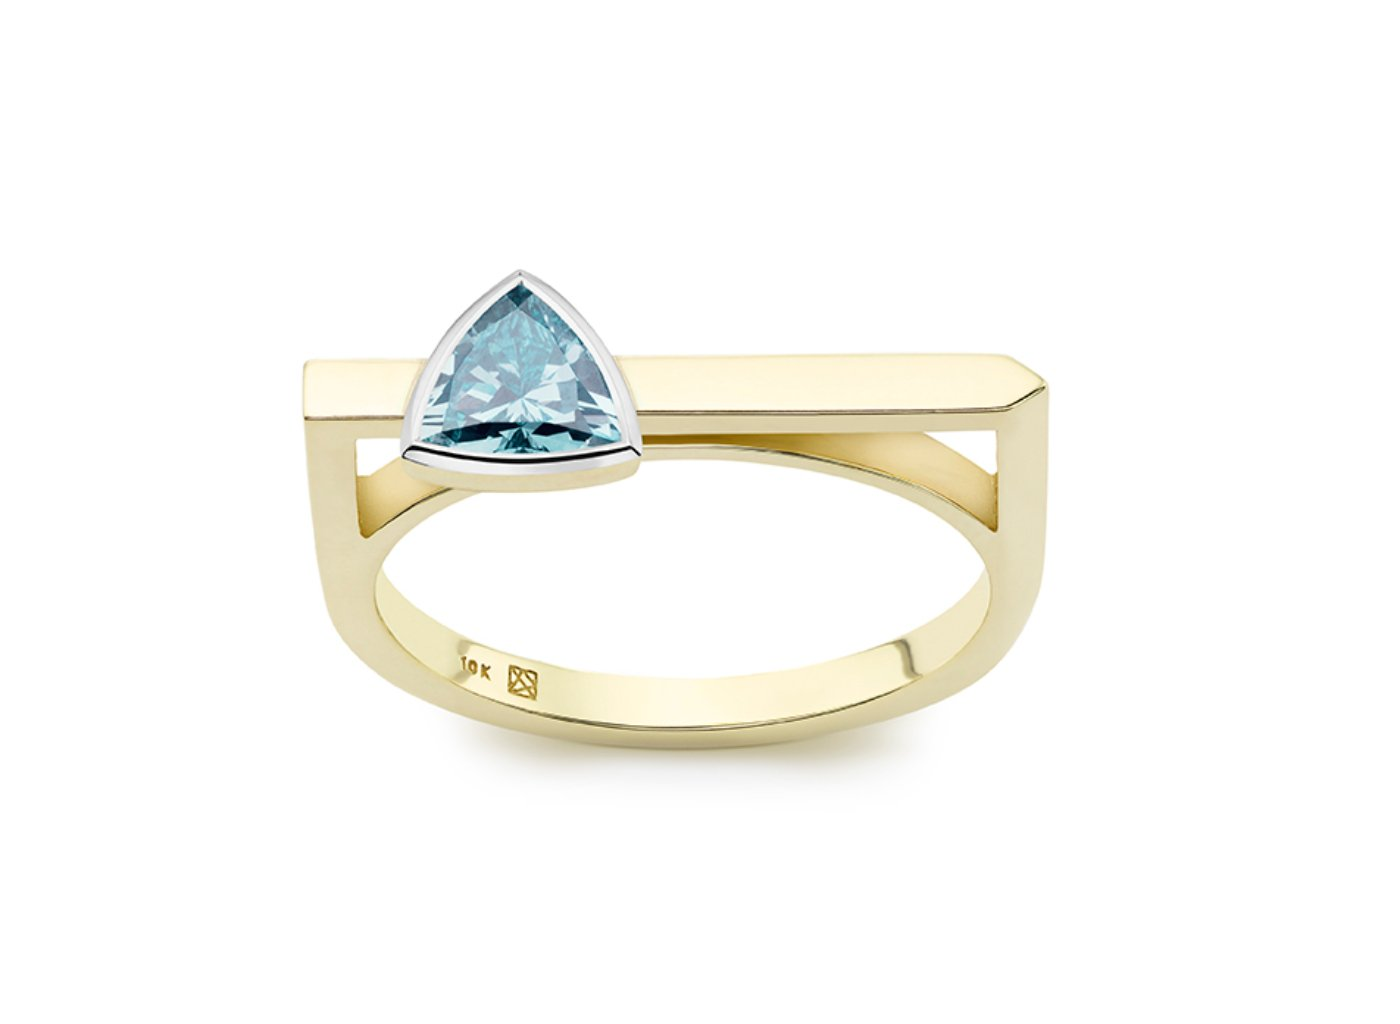 Front view of Trillion linear 3/8 carat ring with blue diamond